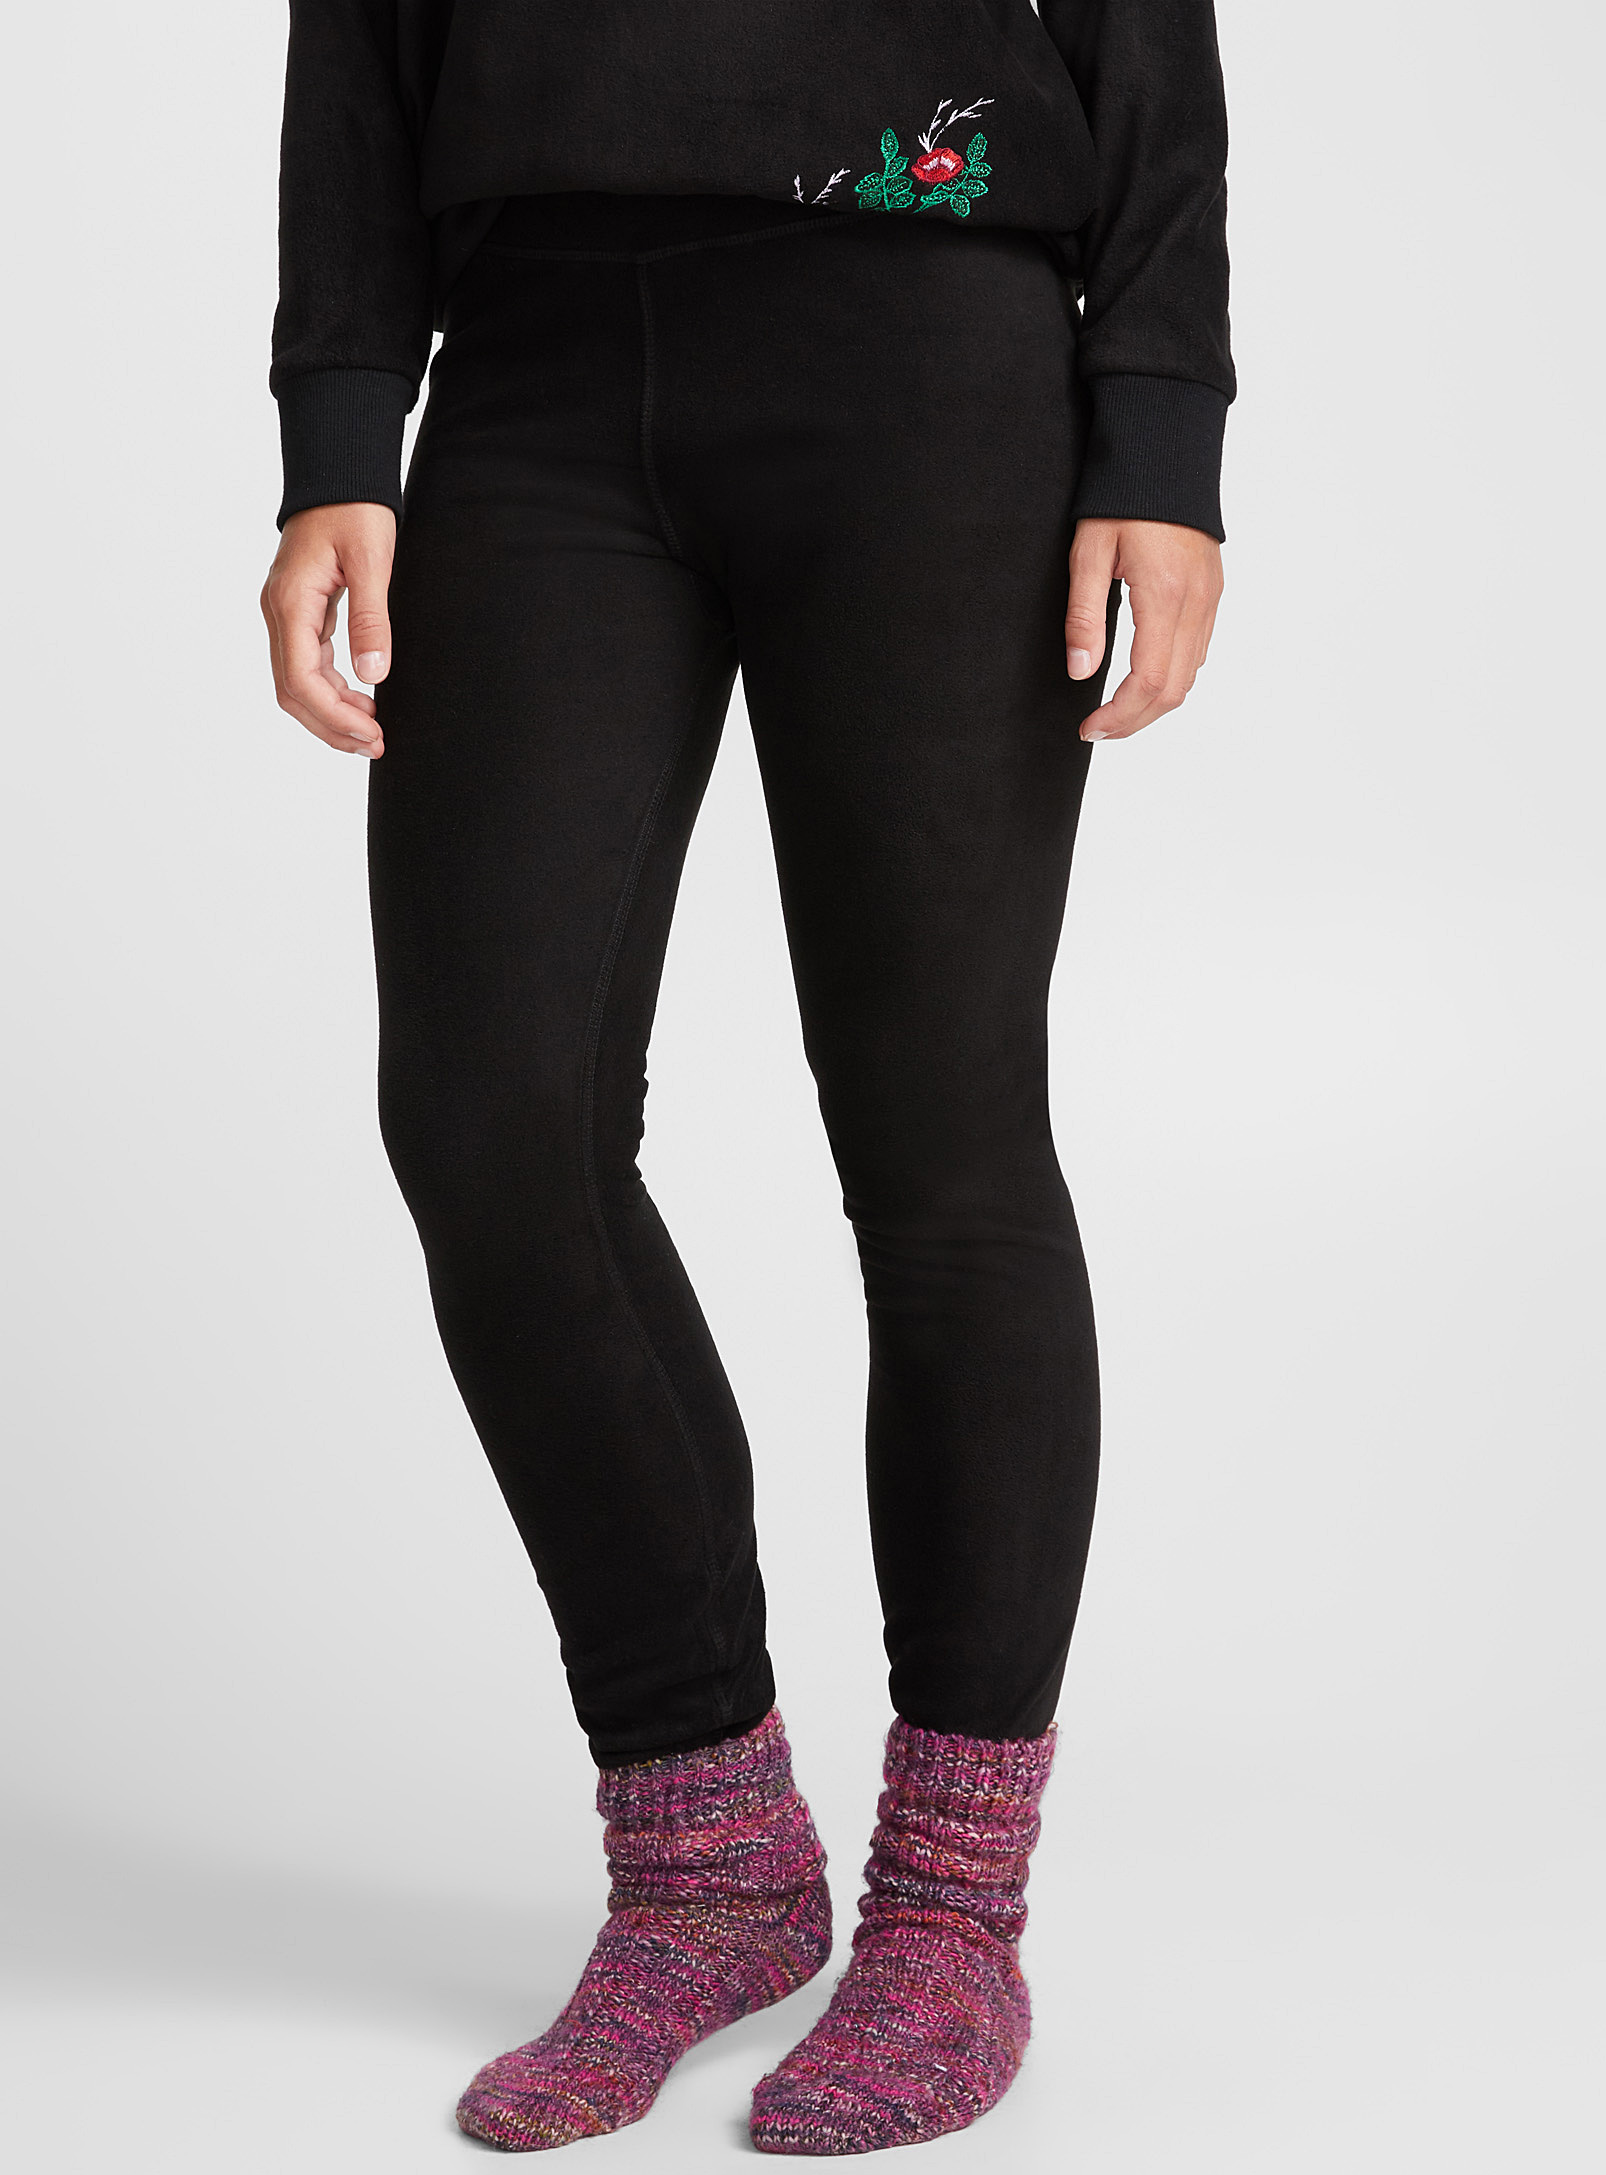 Simple fleeced legging from Simon's for only $32.00